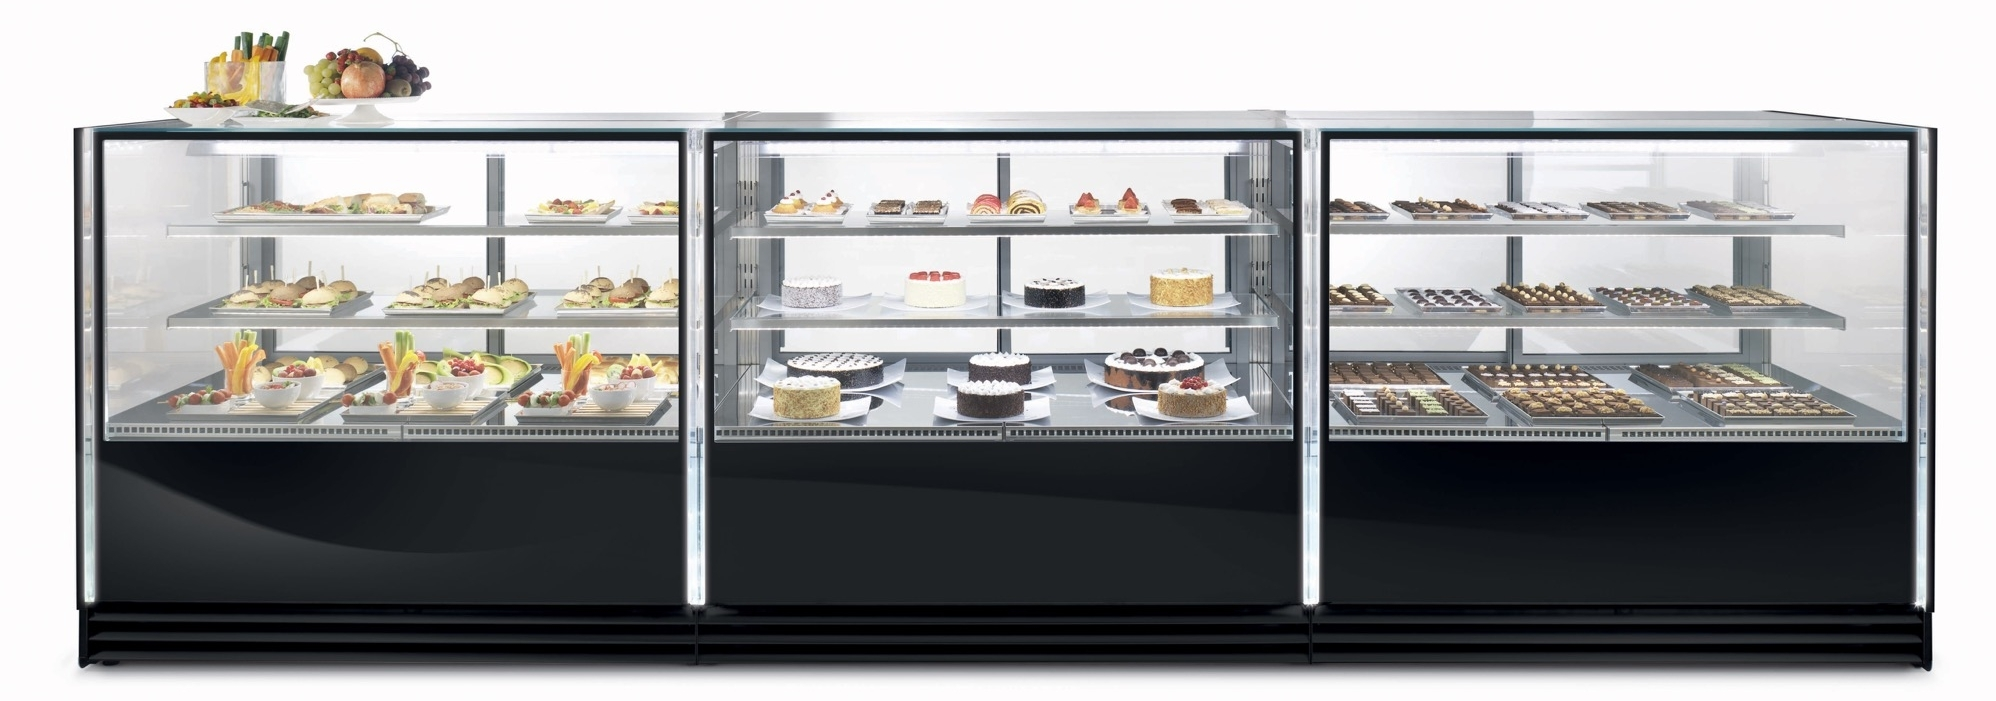 VIK   All new complete and versatile line of refrigerated showcases properly studied for pastry, confectionery and gastronomy available in different heights. Hygienic, energy-saving double-glazed sliding doors.